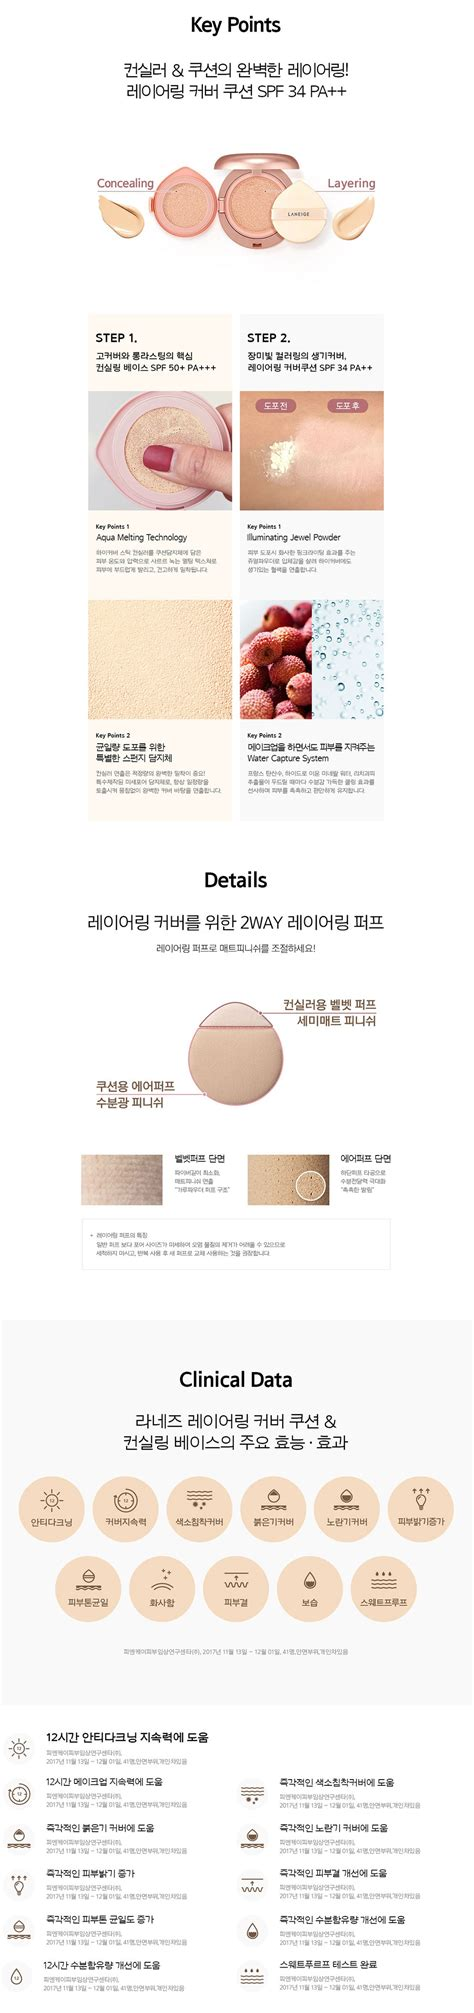 Harga Laneige Layering Cover Cushion laneige layering cover cushion korean cosmetic shop malaysia